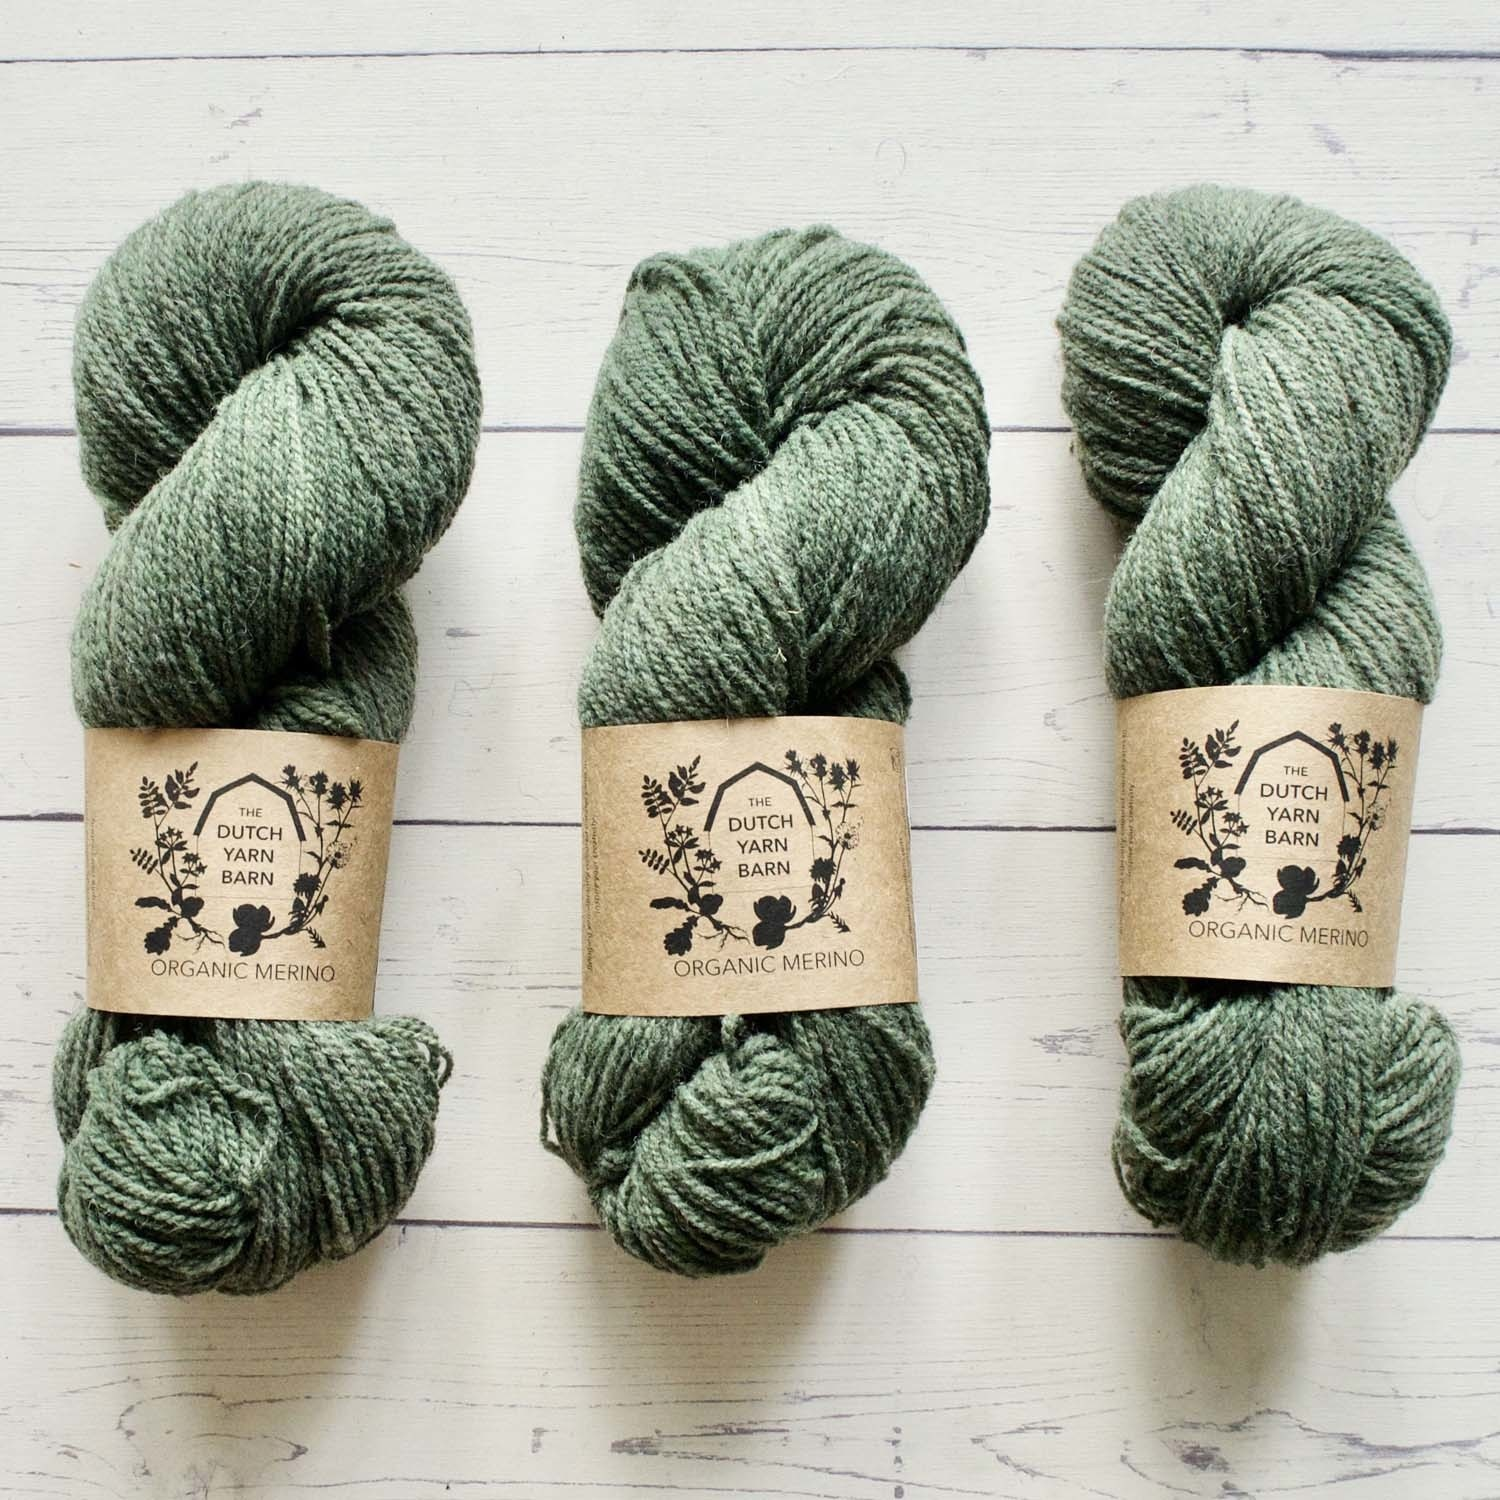 DUTCH YARN BARN ORGANIC MERINO - PINE